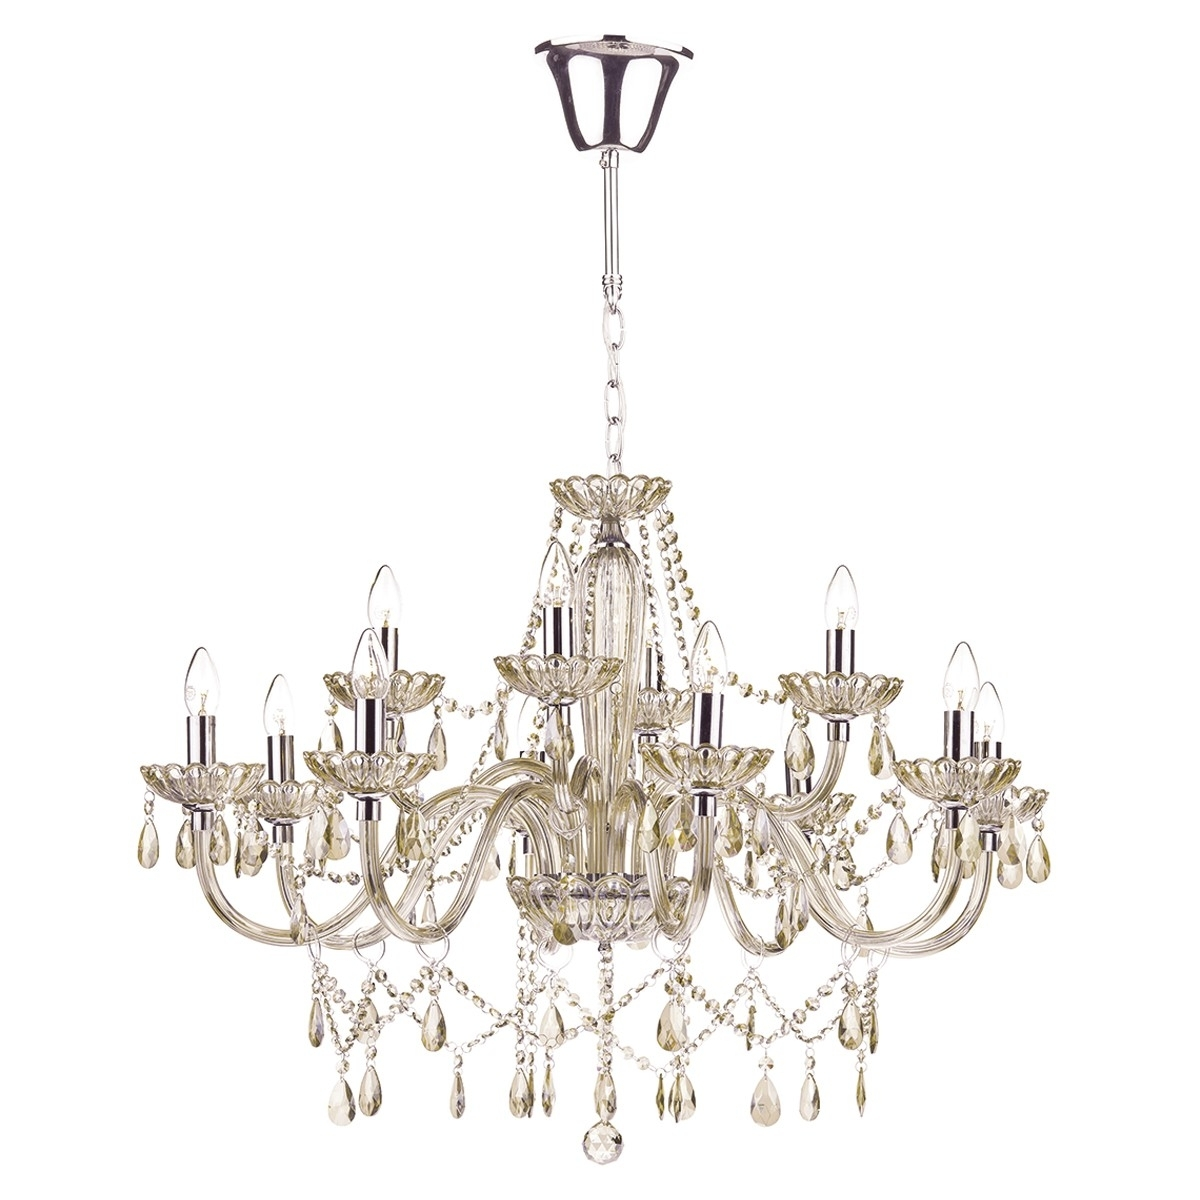 Favorite Light Fitting Chandeliers Throughout Chandeliers Design : Awesome Light Chandelier Capital Lighting (View 6 of 20)